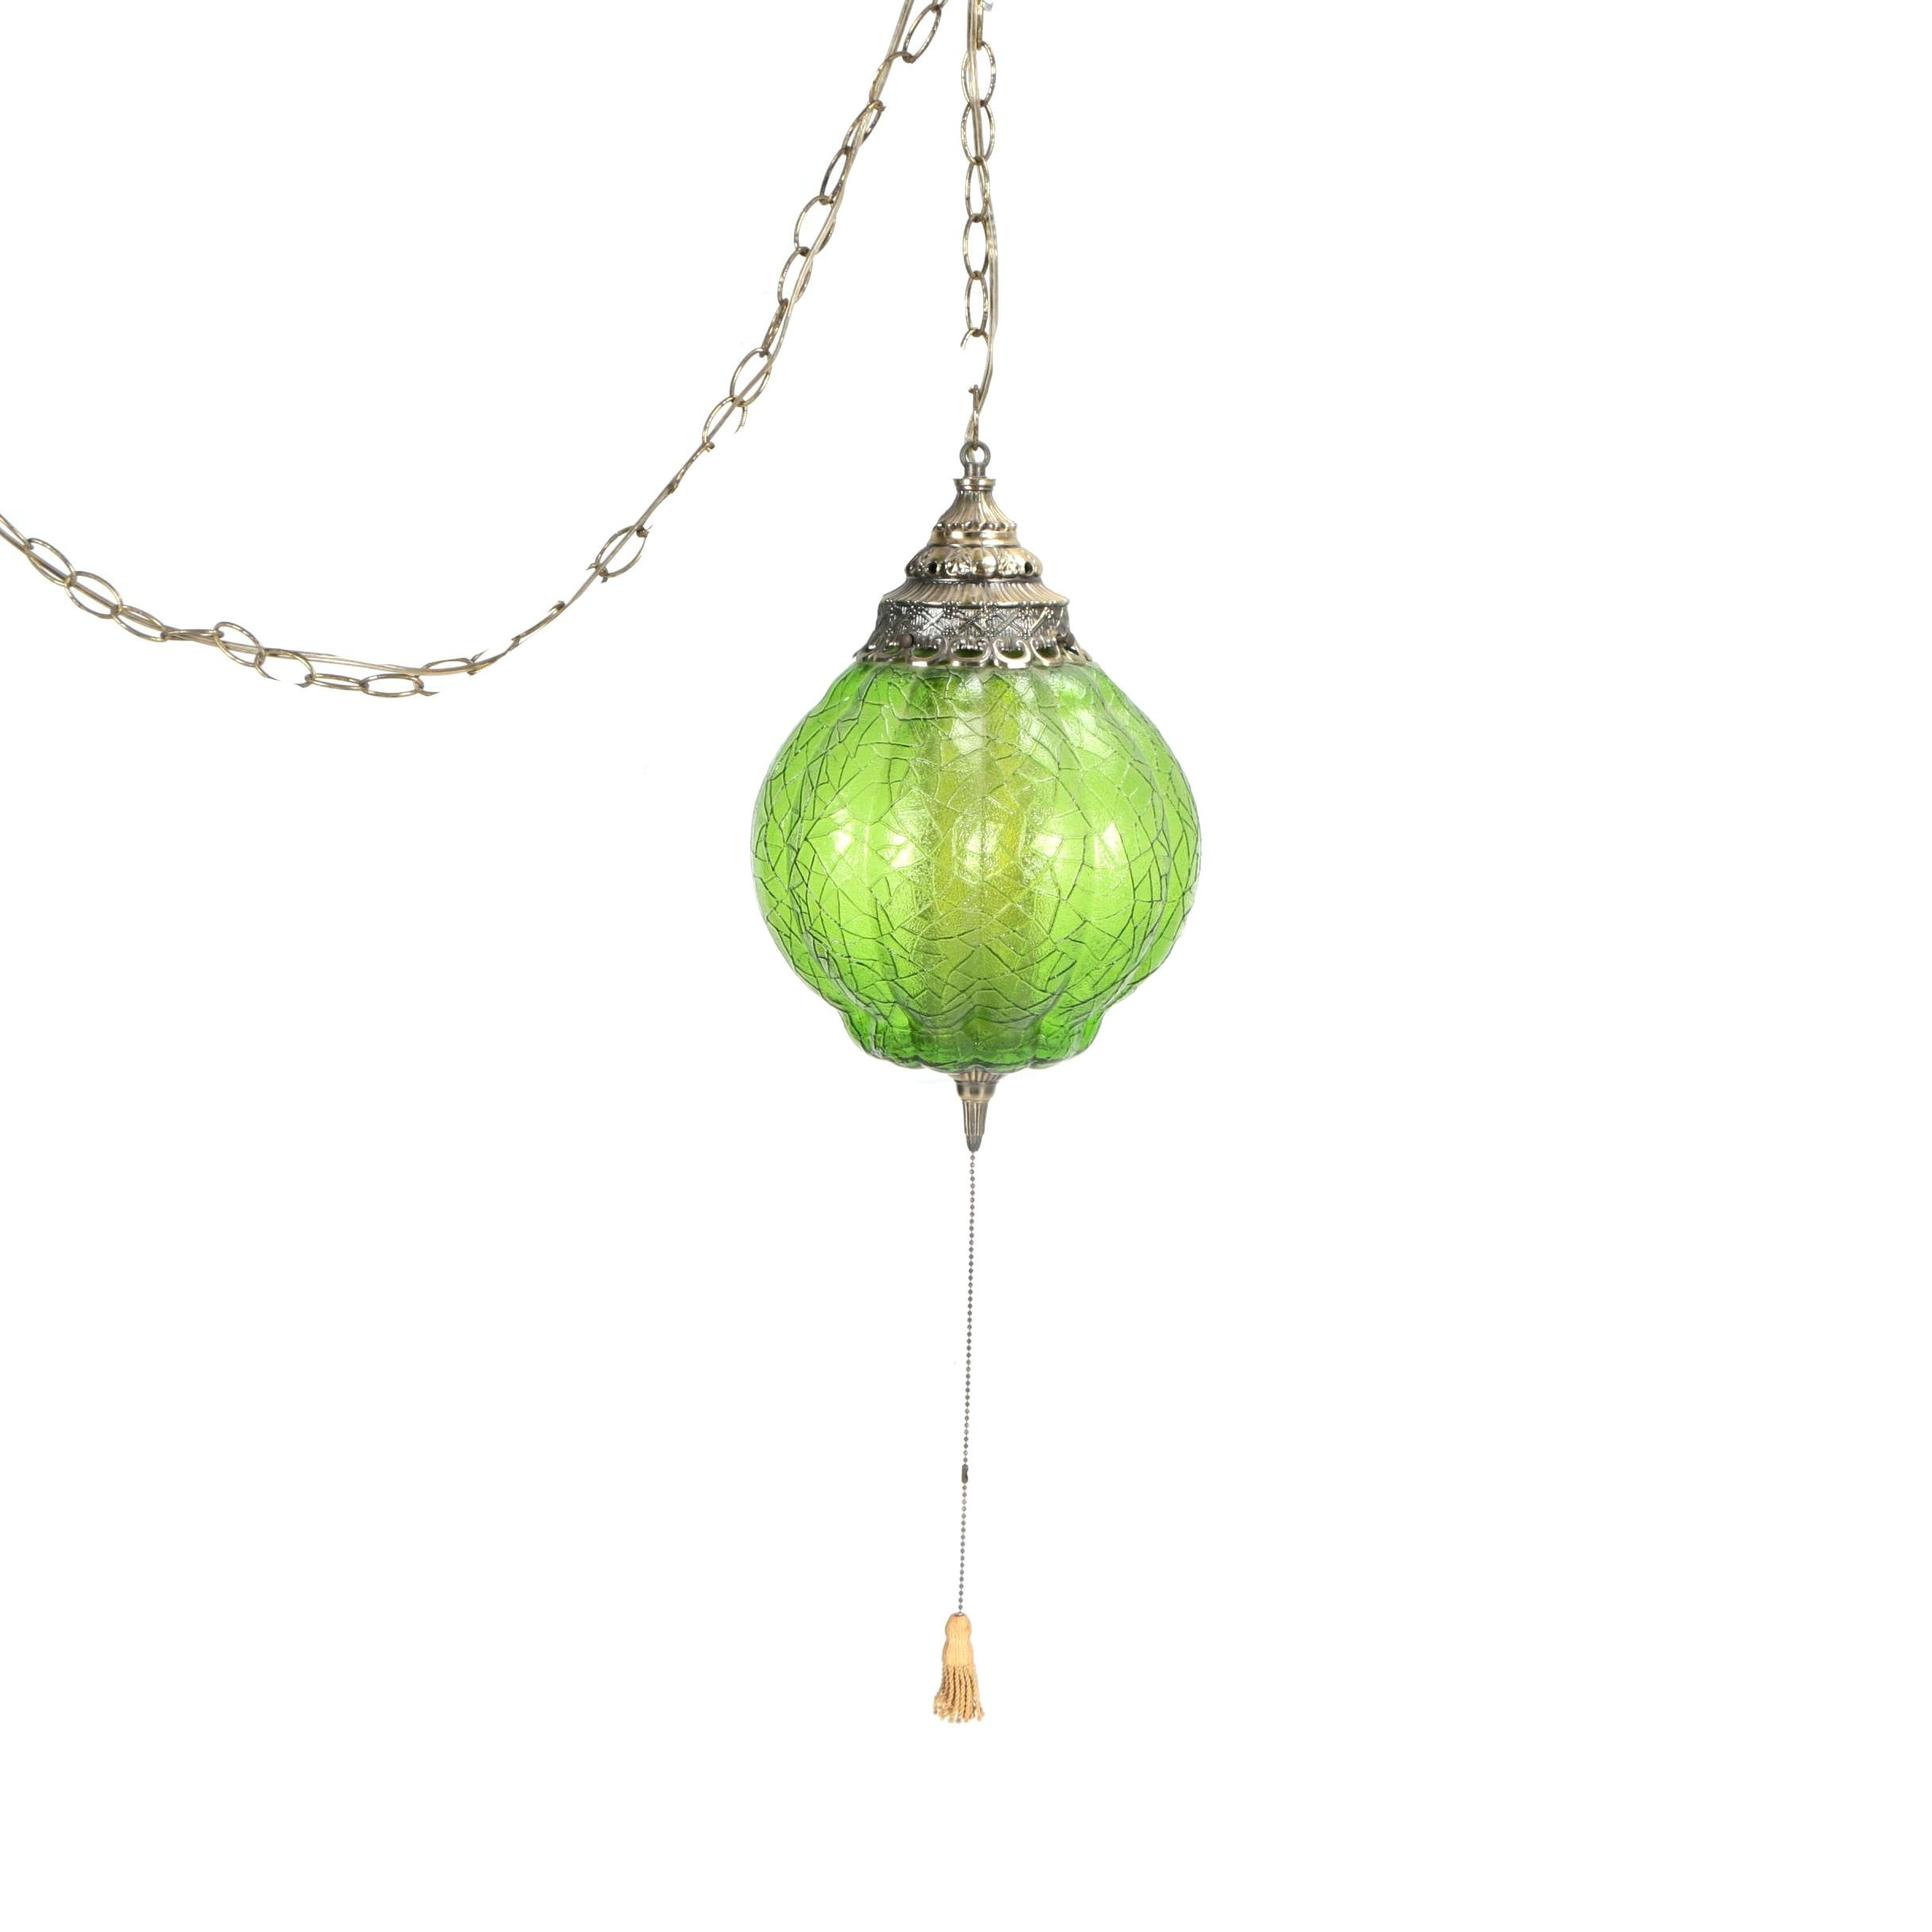 Vintage Pendant Light with Green Glass Shade